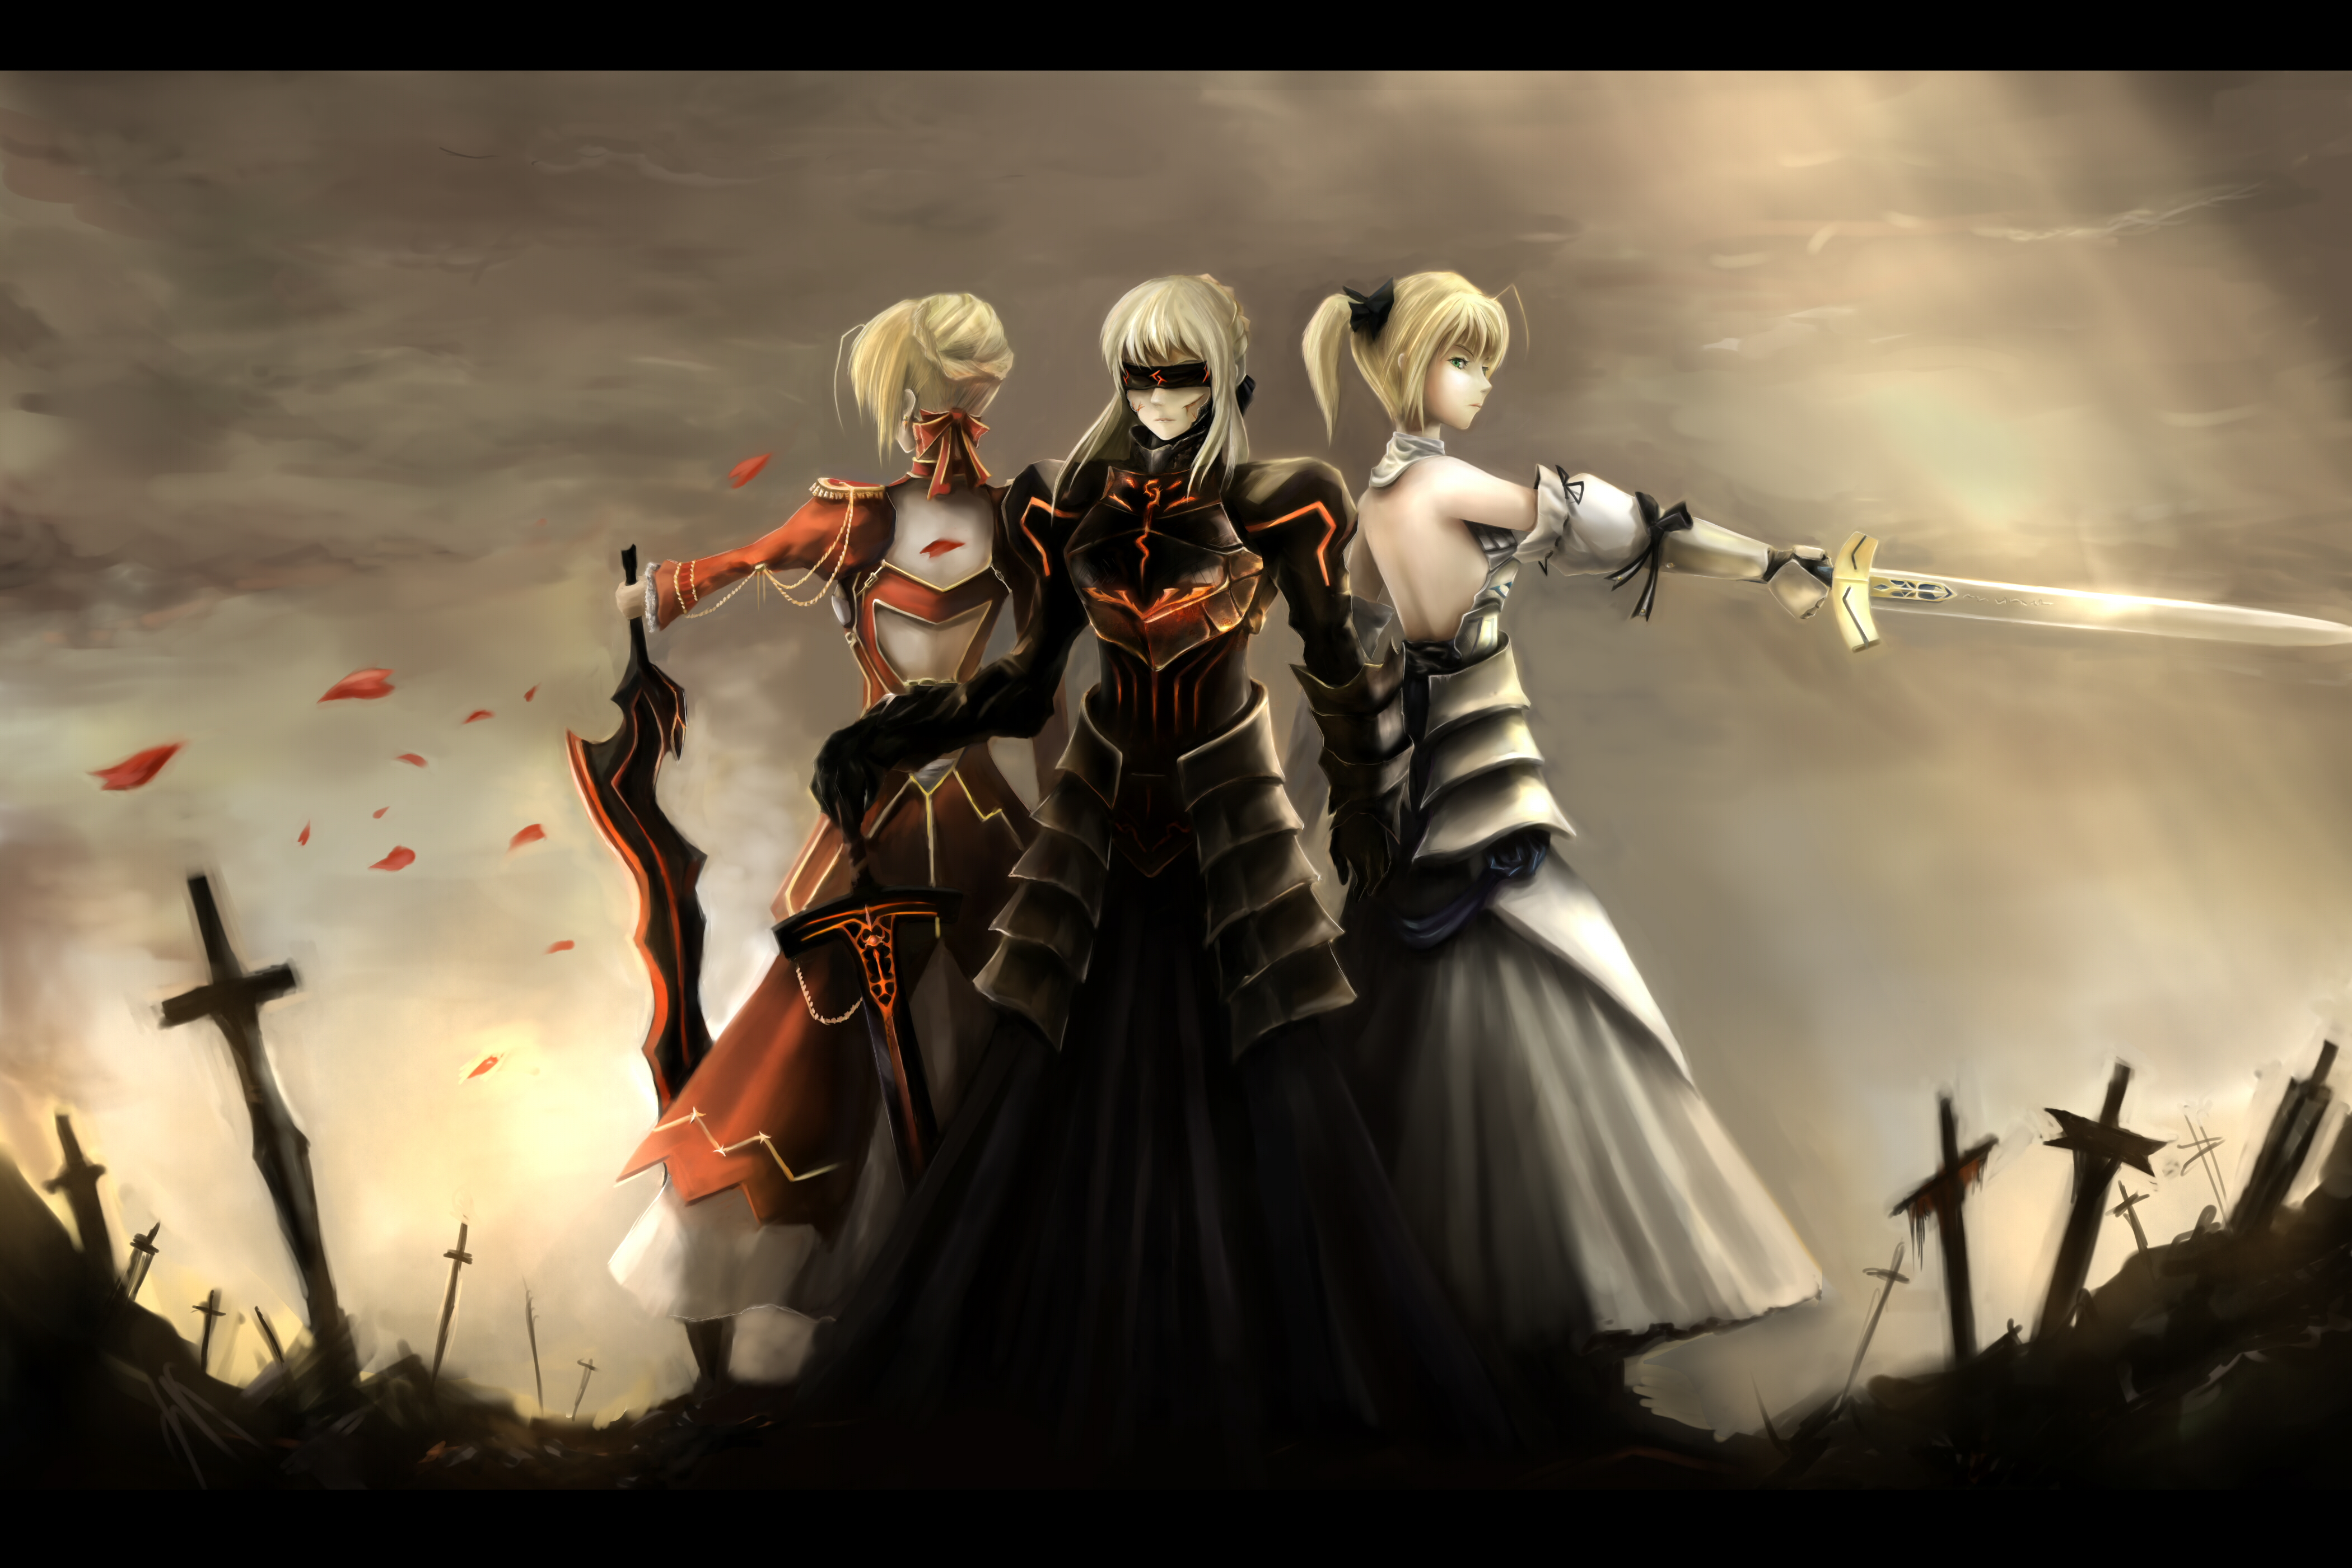 fate extra fate stay night nopnop saber sword weapon wallpaper 4200x2800